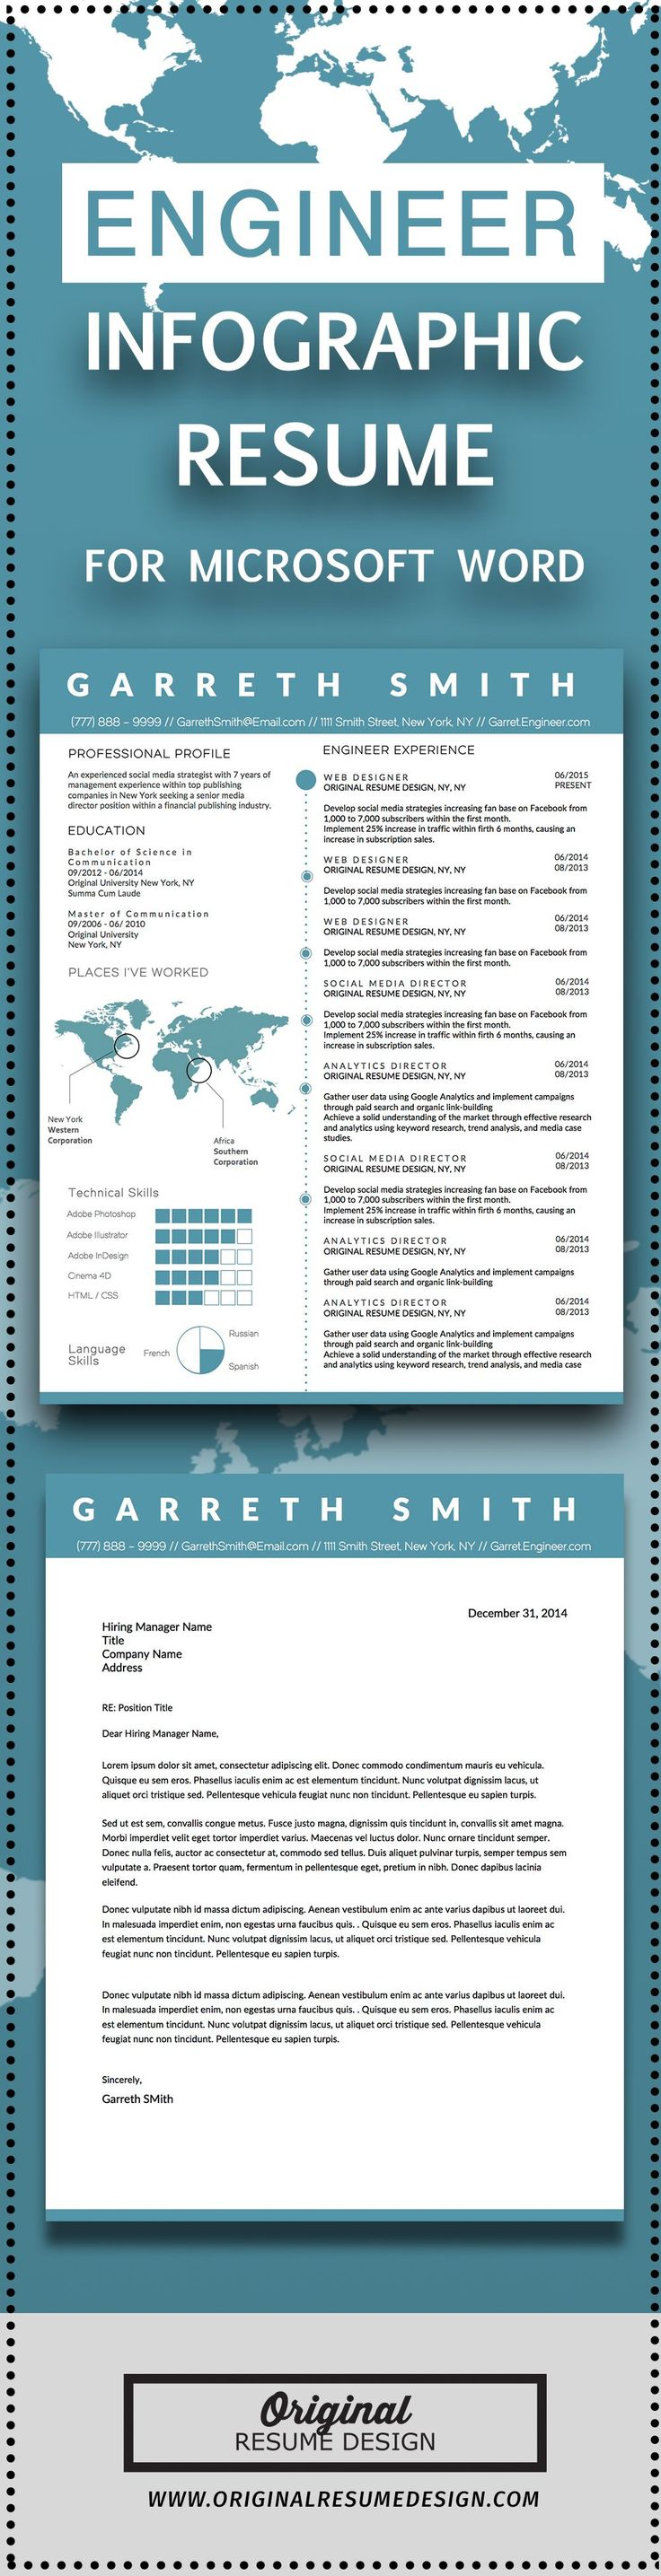 Creative Infographic Clean Business Resume Template for Microsoft Word. Perfect for Engineers, Software Developers, and many more career paths.